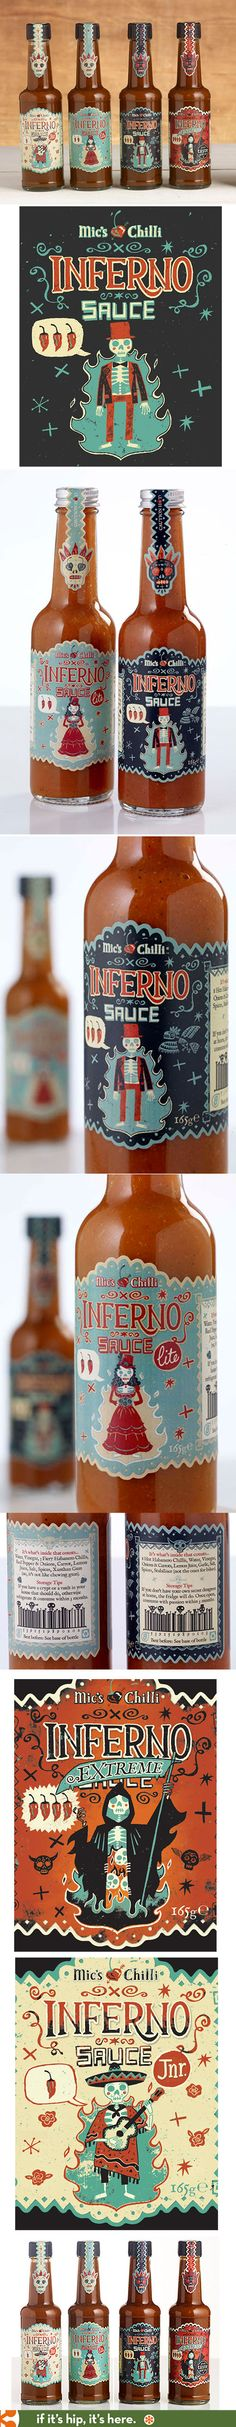 Here you go Bee Bee Bee Castellucci Gray Gray Gray Rapisarda Lockhart Lockhart Lockhart Clarke barcode and packaging example in fabulous label designs for Mic's Chilli Inferno Sauces by Steve Simpson. Honey Packaging, Cool Packaging, Food Packaging Design, Beverage Packaging, Bottle Packaging, Print Packaging, Packaging Design Inspiration, Branding Design, Product Packaging